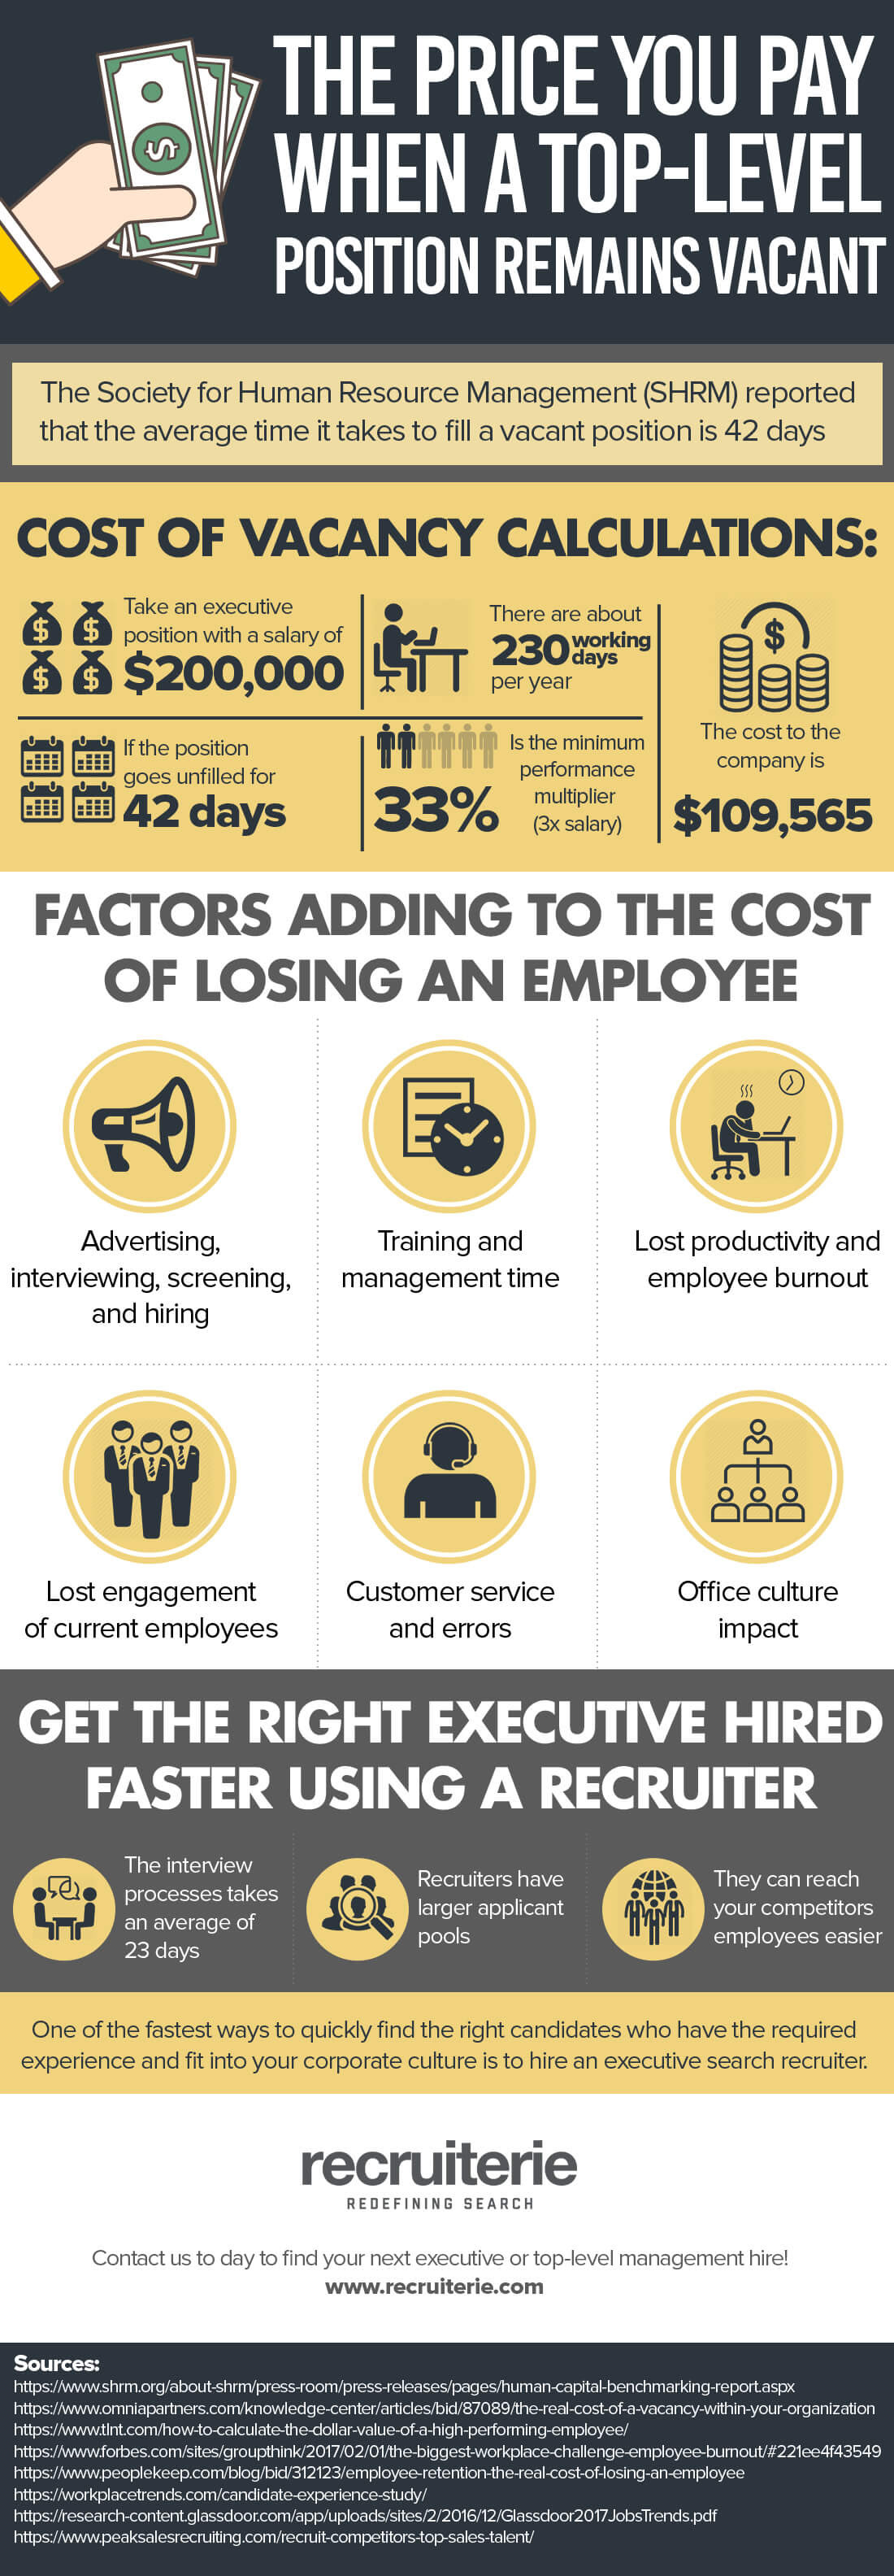 The price you pay when a top-level executive position remains vacant - infographic